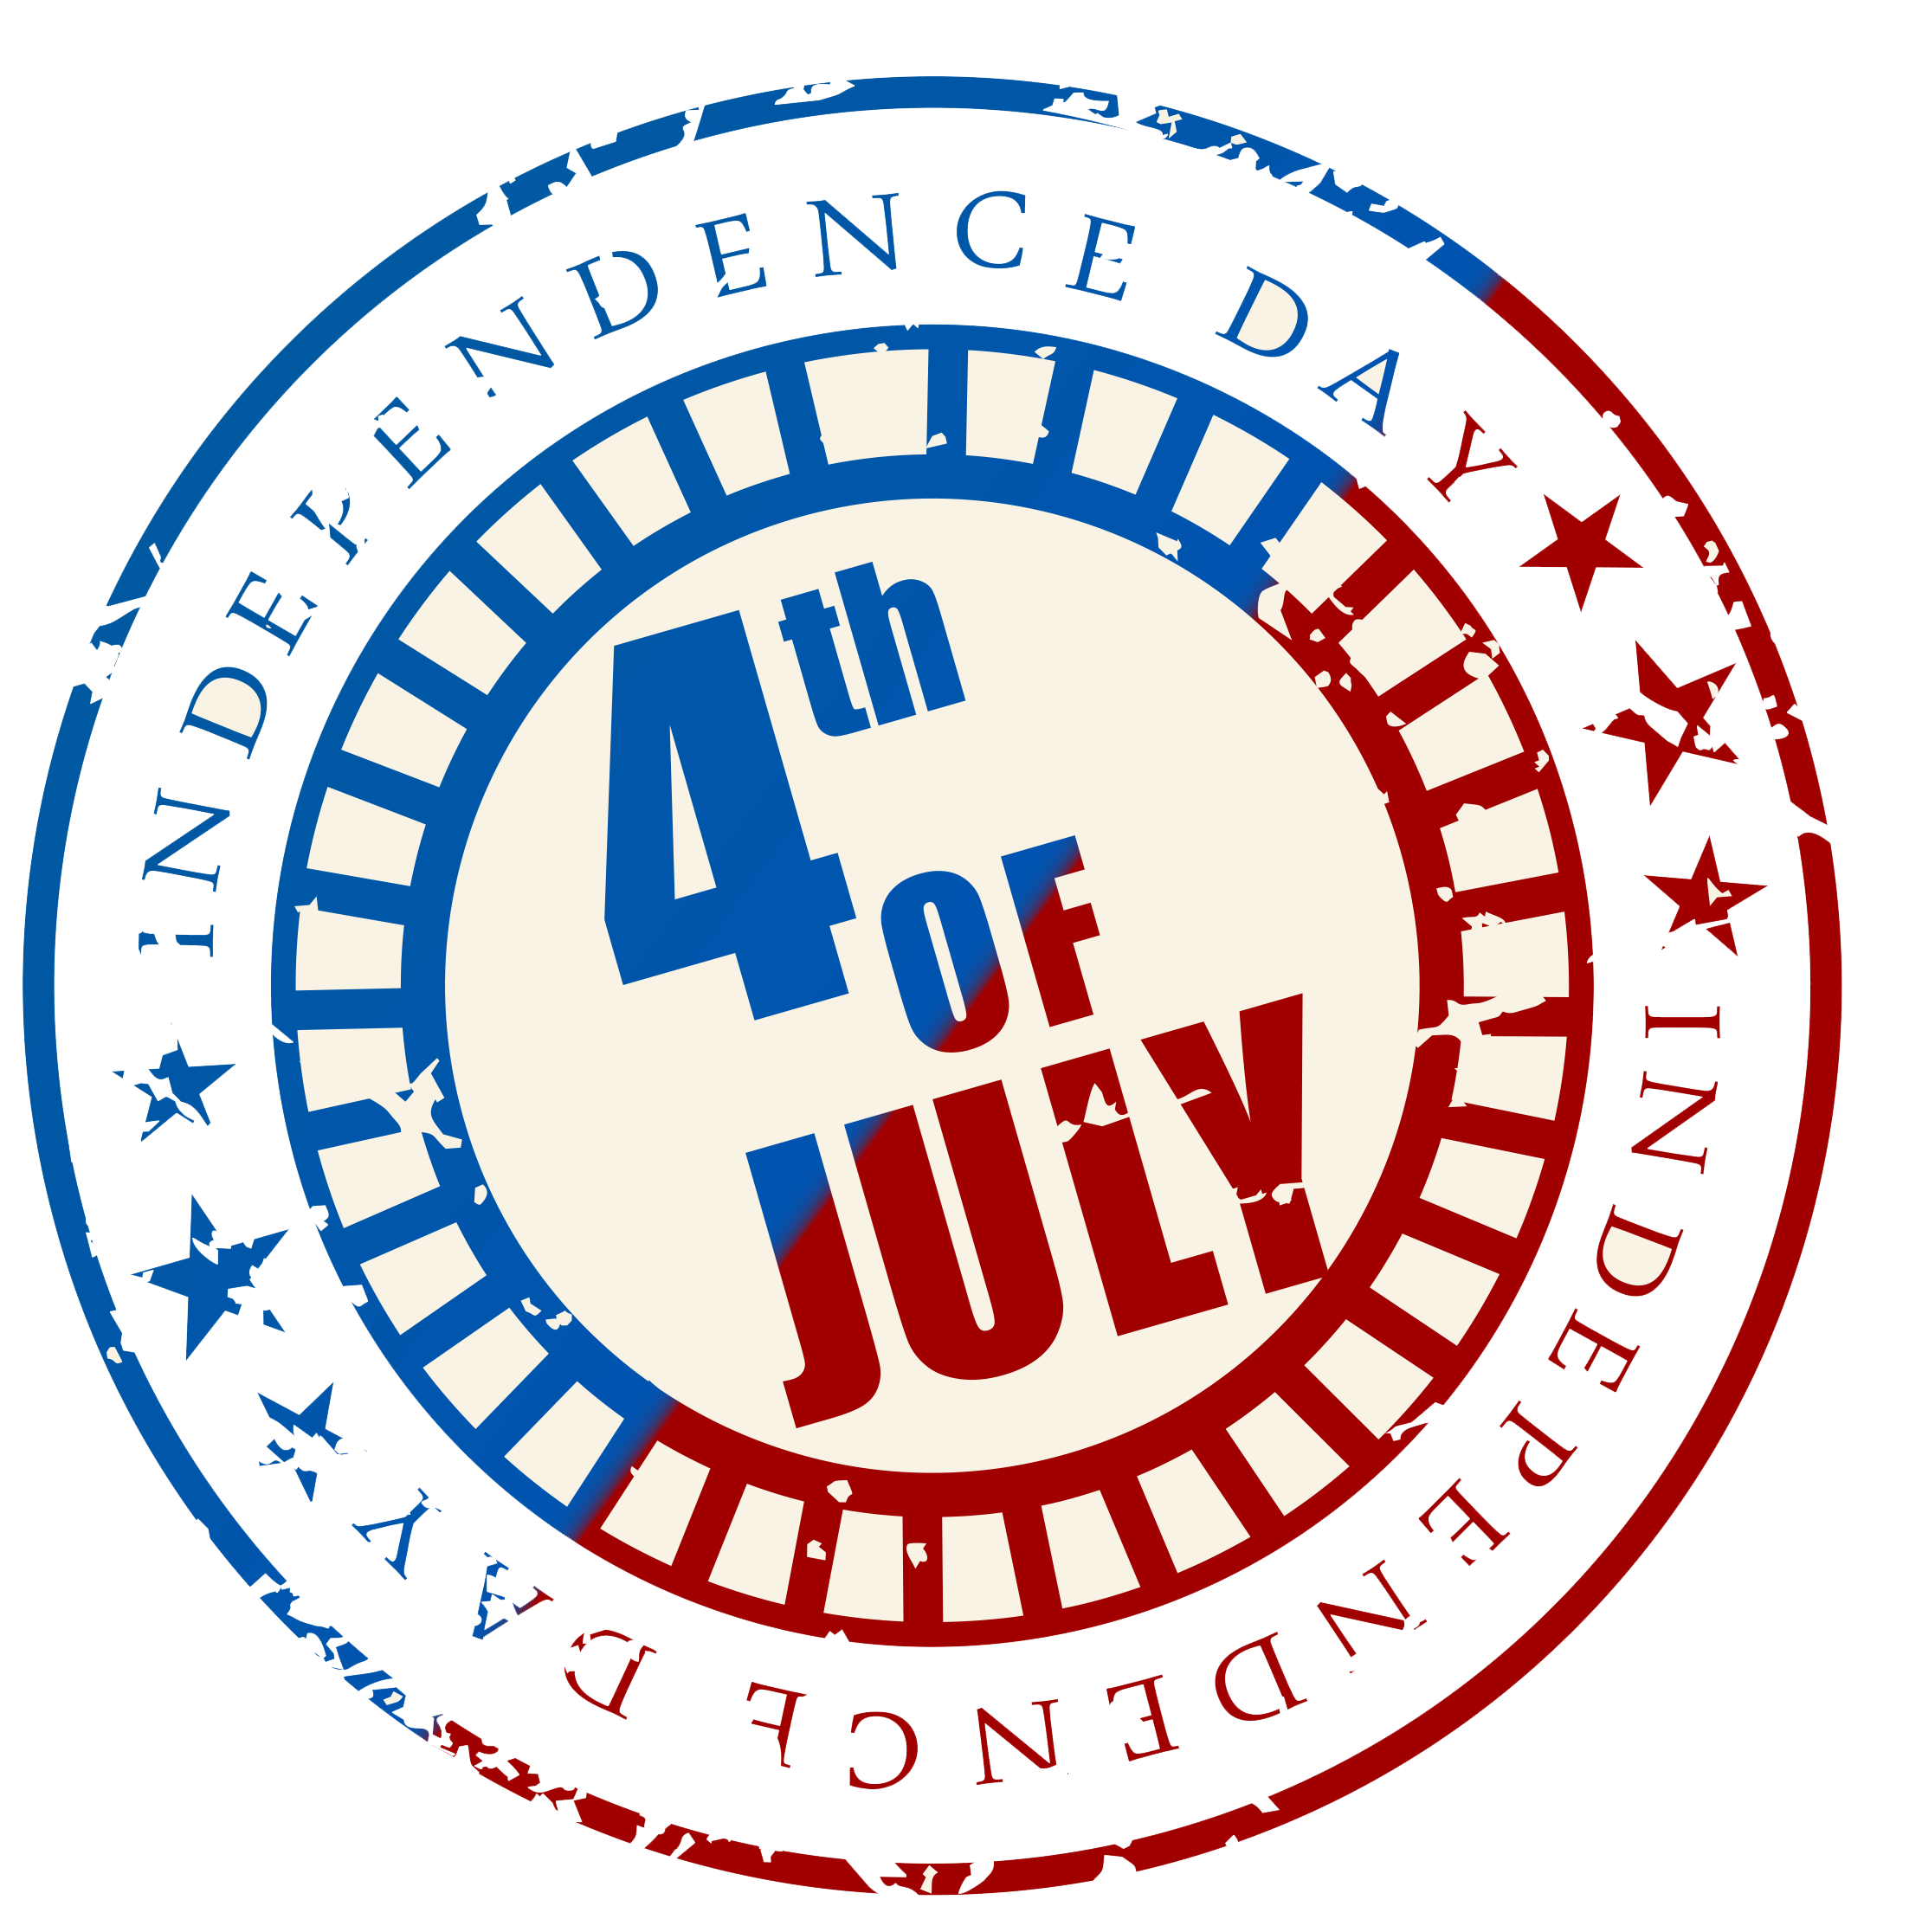 4Th Of July Quotes 4Th Of July Events 2014 In Huntsville Al  Our Valley Events  4Th